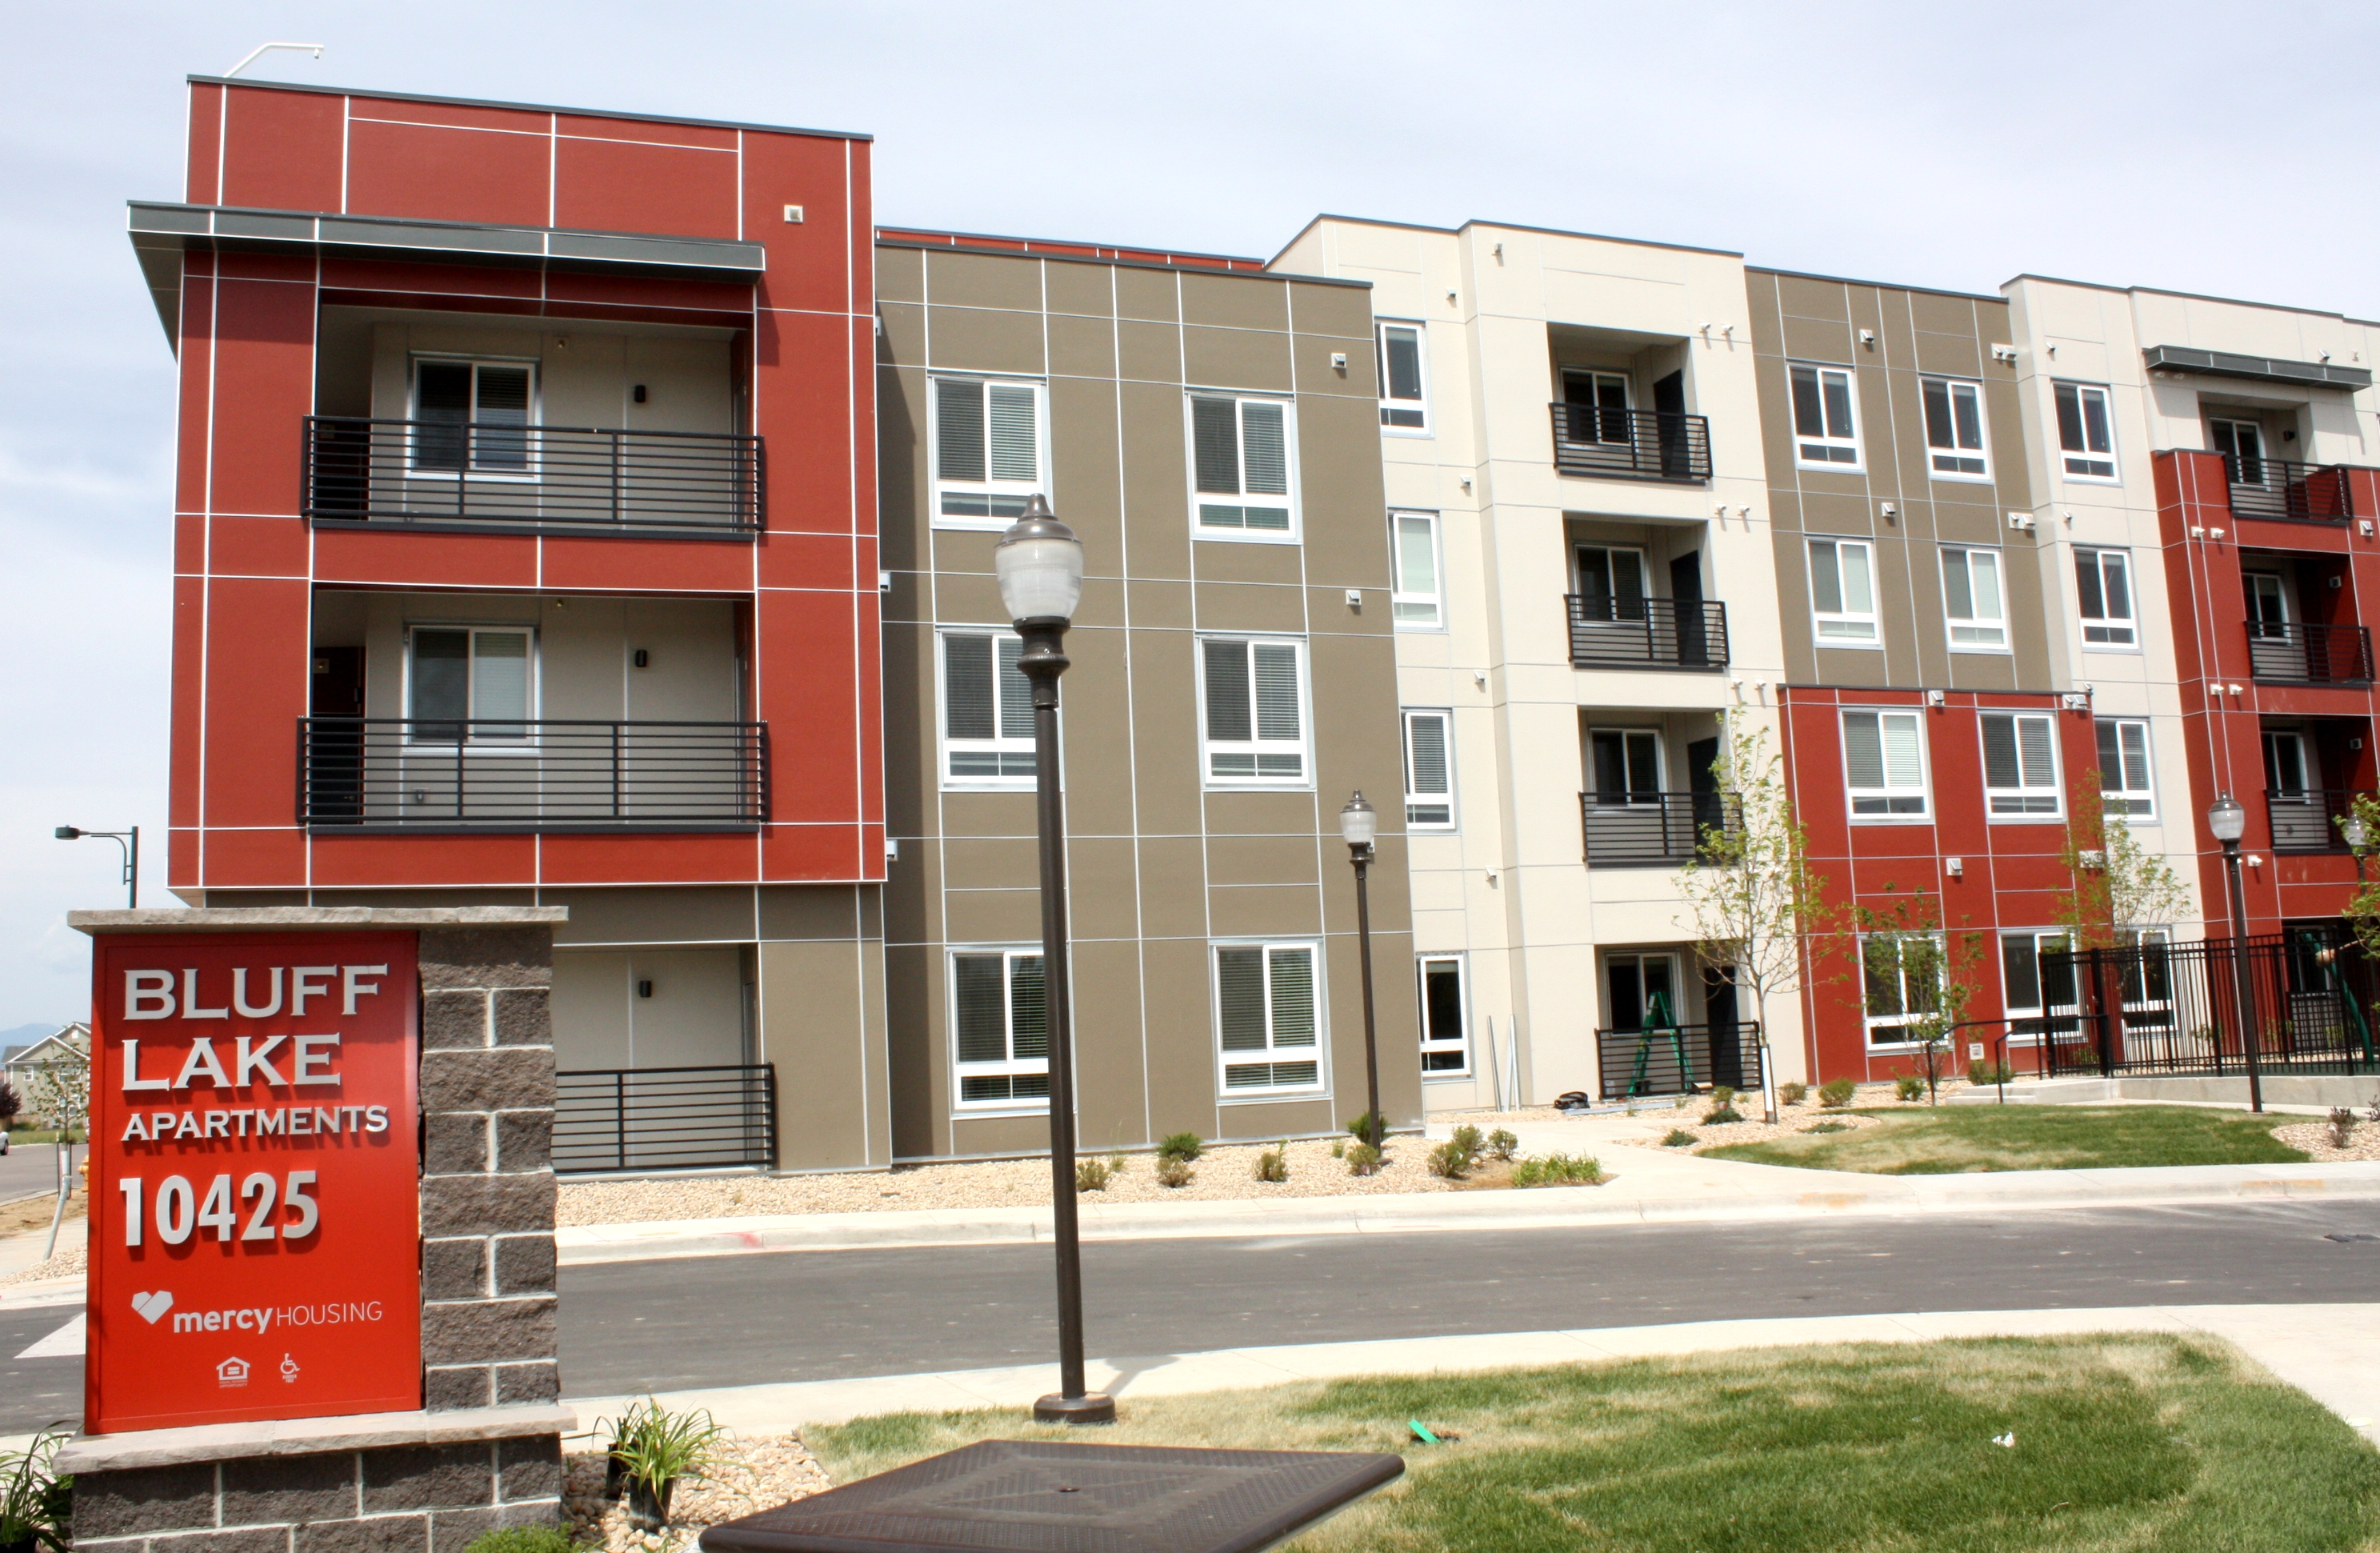 mercy housing welcomes bluff lake residents to affordable